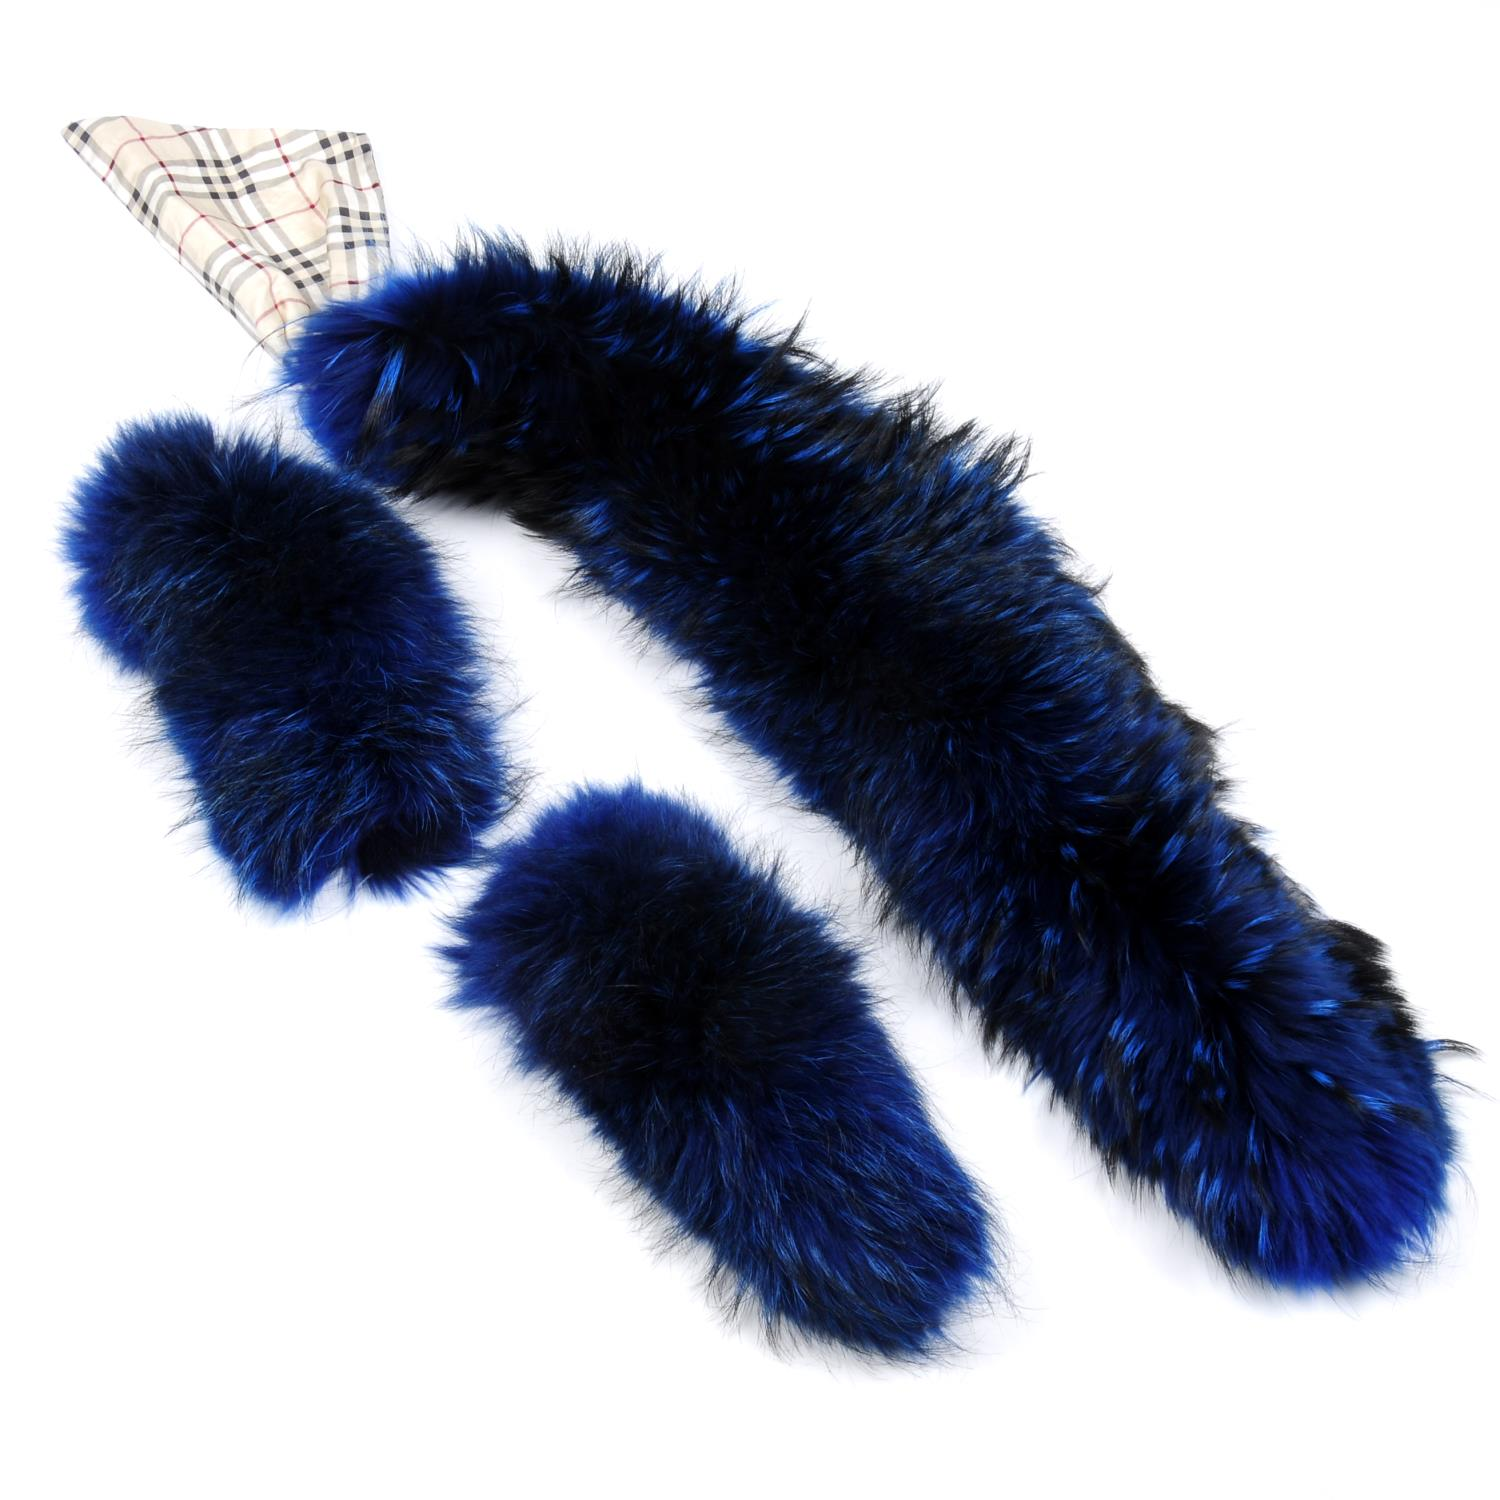 Lot 23 - BURBERRY - a dyed blue fox fur collar and cuffs.